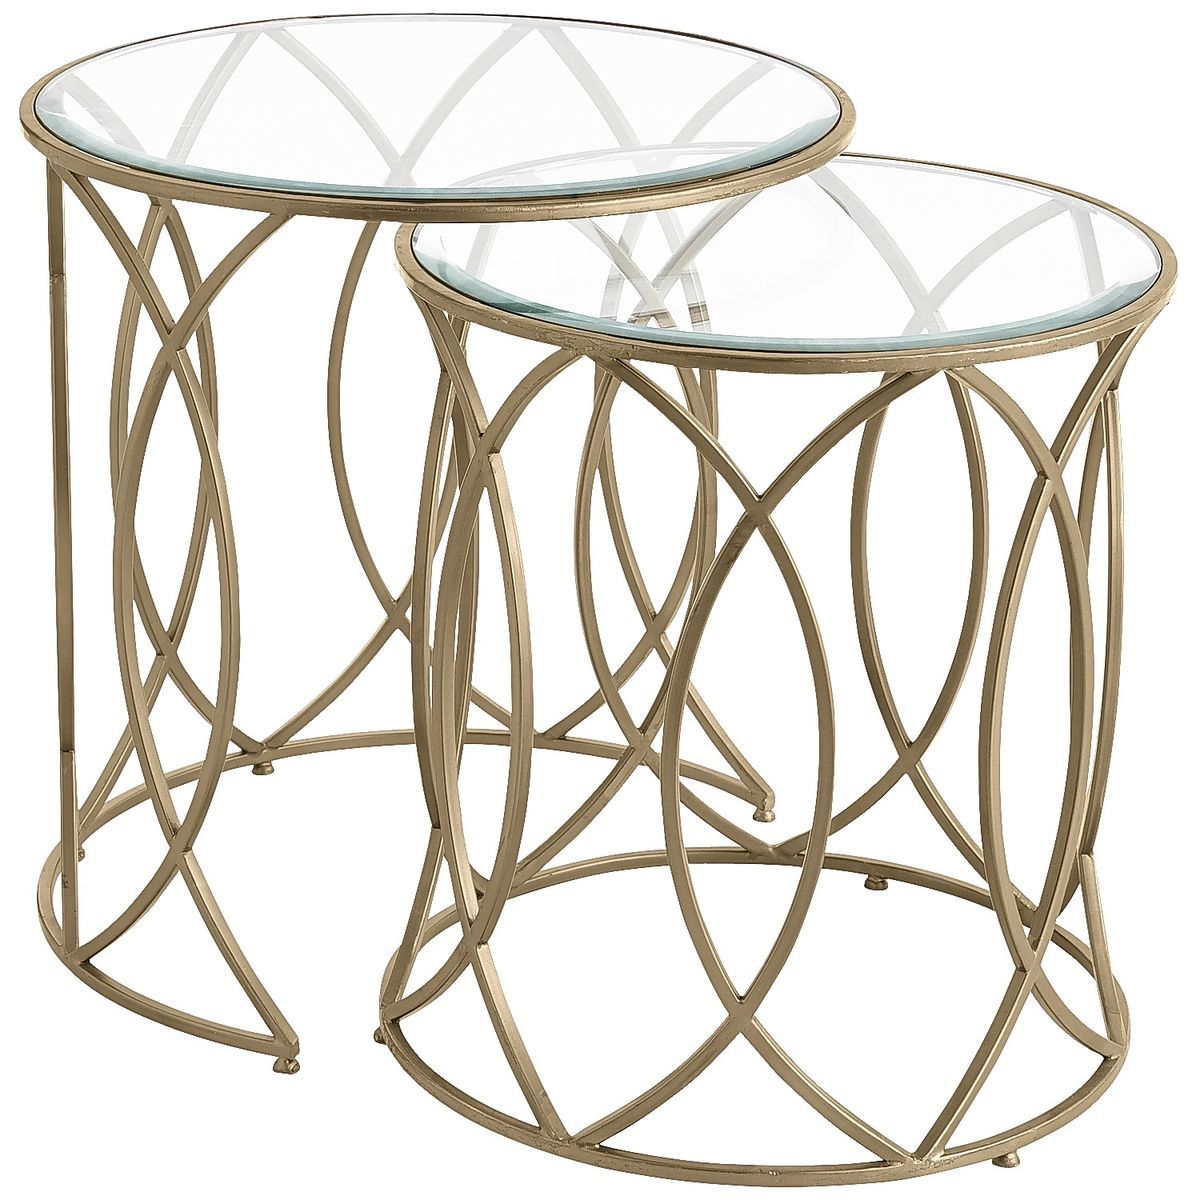 Elana Bronze Iron Round Nesting Tables Nesting Tables Chairs